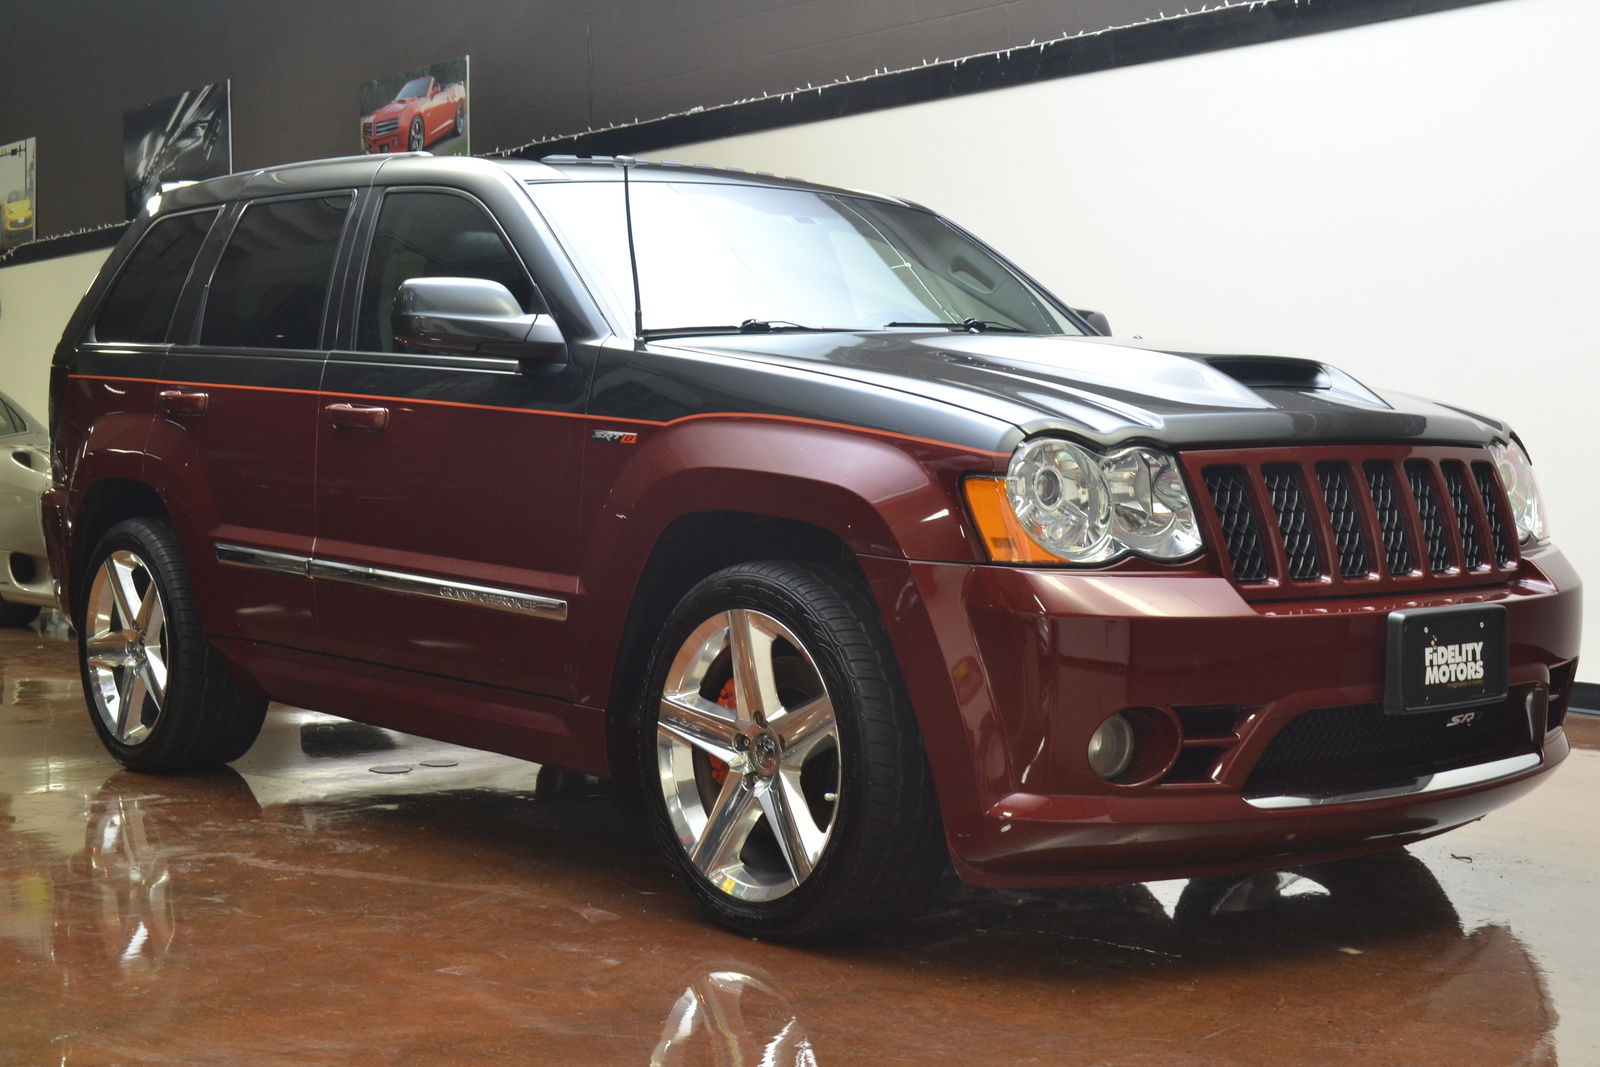 2008 jeep grand cherokee srt8 picture exterior. Cars Review. Best American Auto & Cars Review